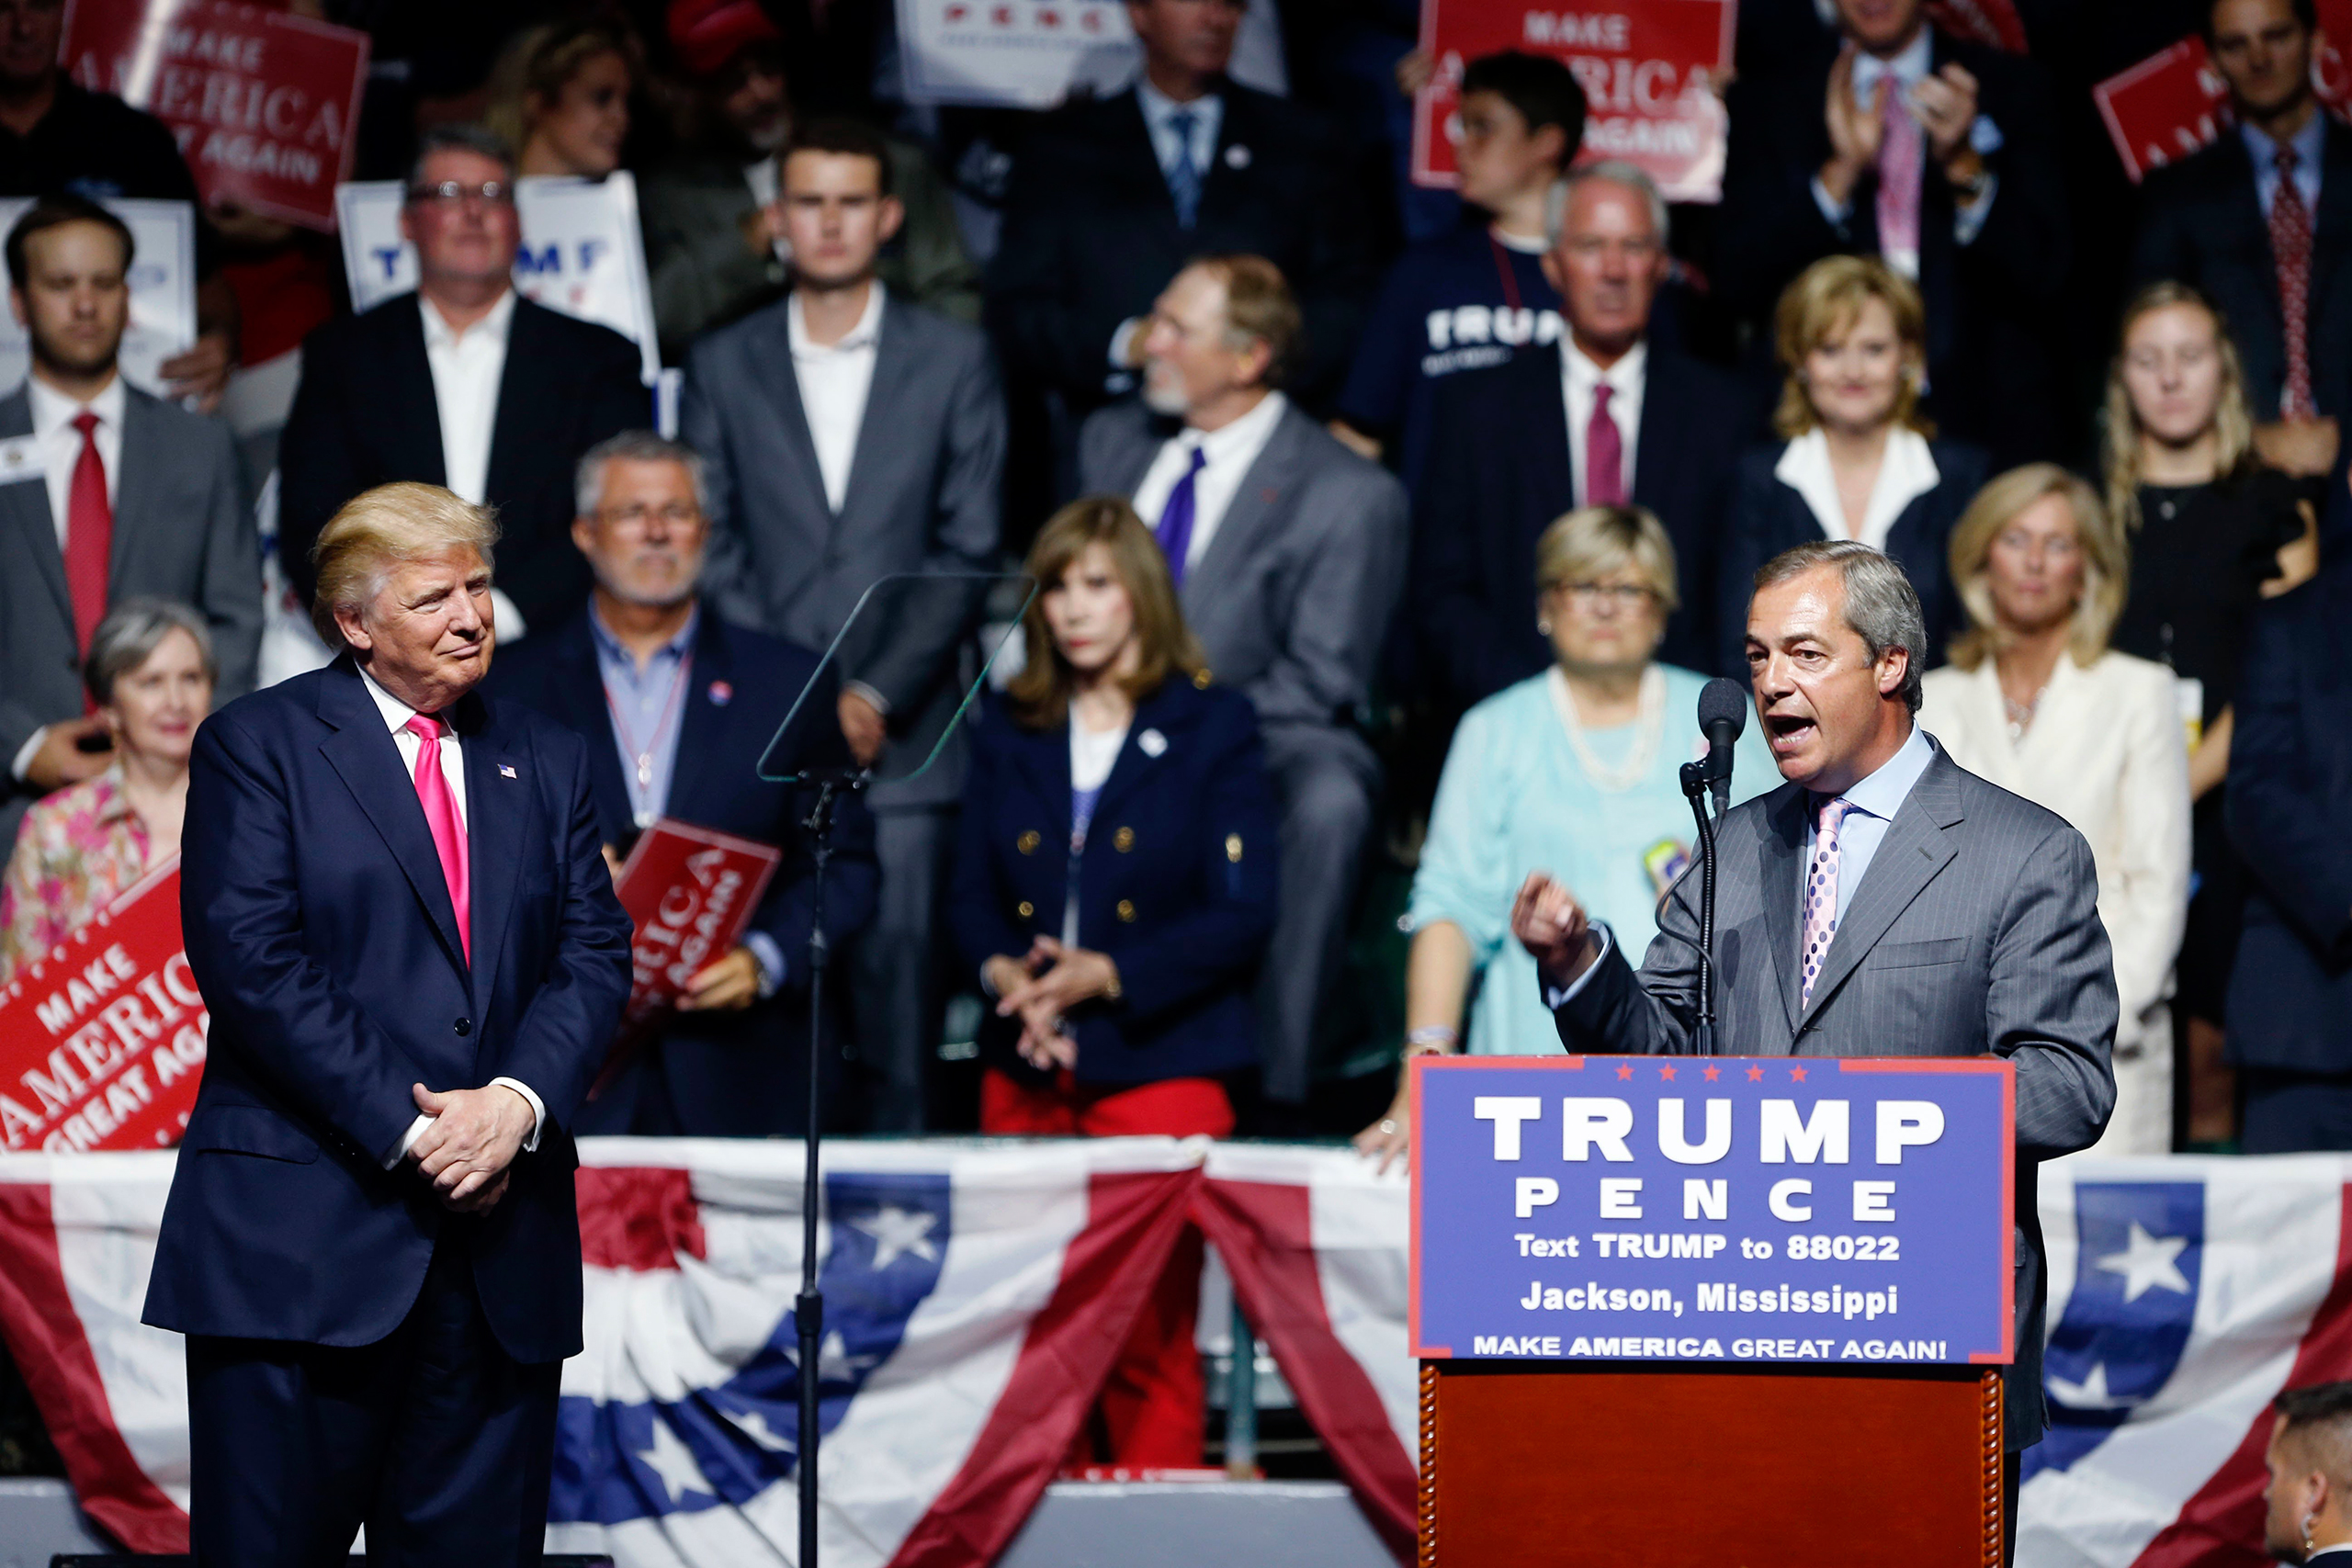 Nigel Farage, ex-leader of the British UKIP party, speaks as Republican presidential candidate Donald Trump listens at Trump's campaign rally in Jackson, Miss., on Aug. 24, 2016.